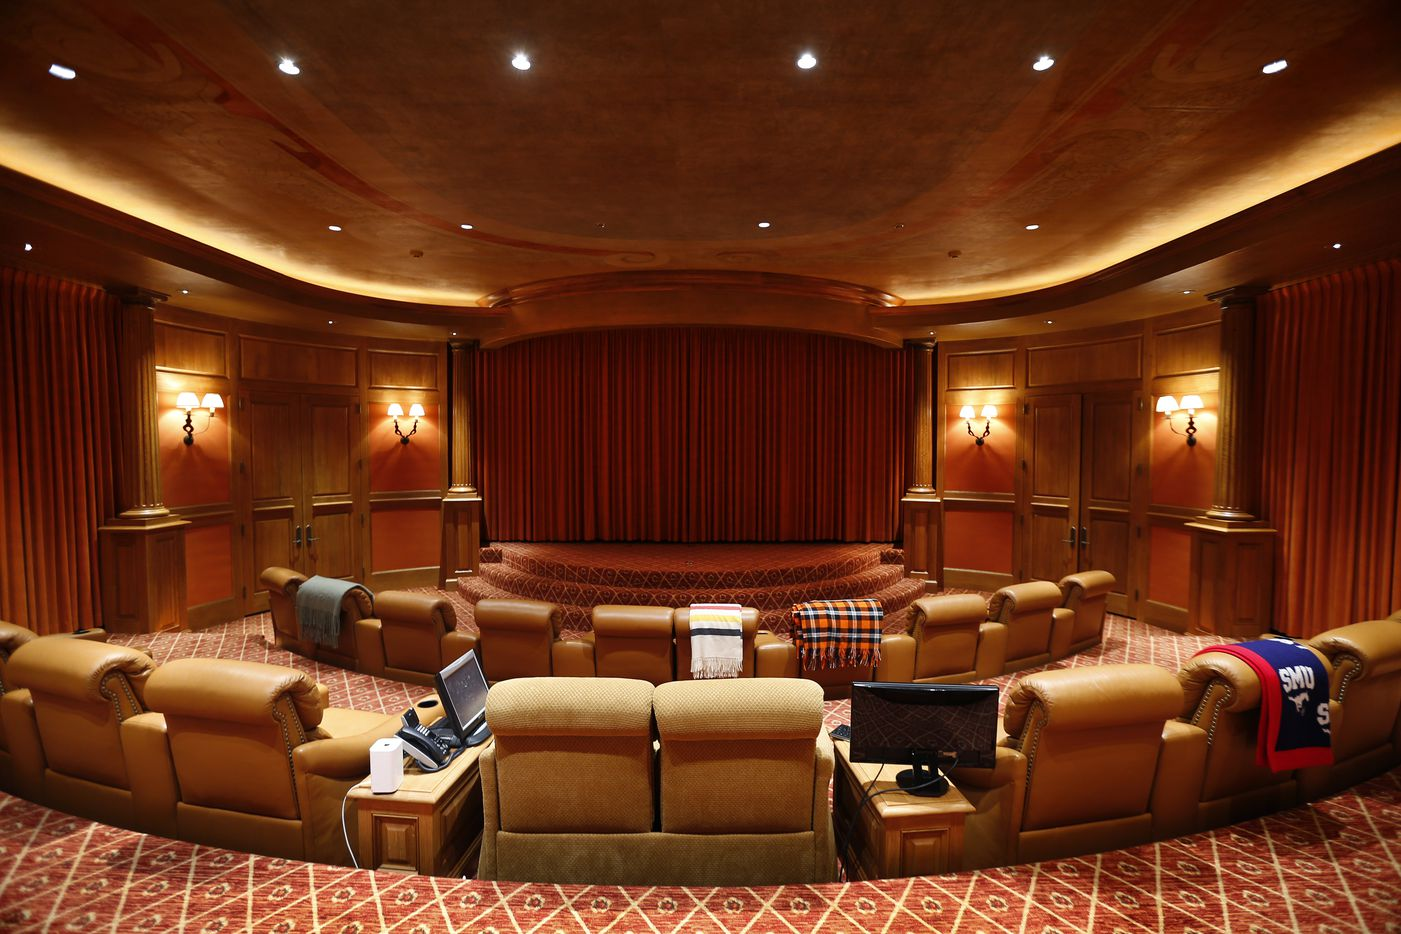 The Mesa Vista Theater in The Lodge of businessman T. Boone Pickens Mesa Vista Ranch.